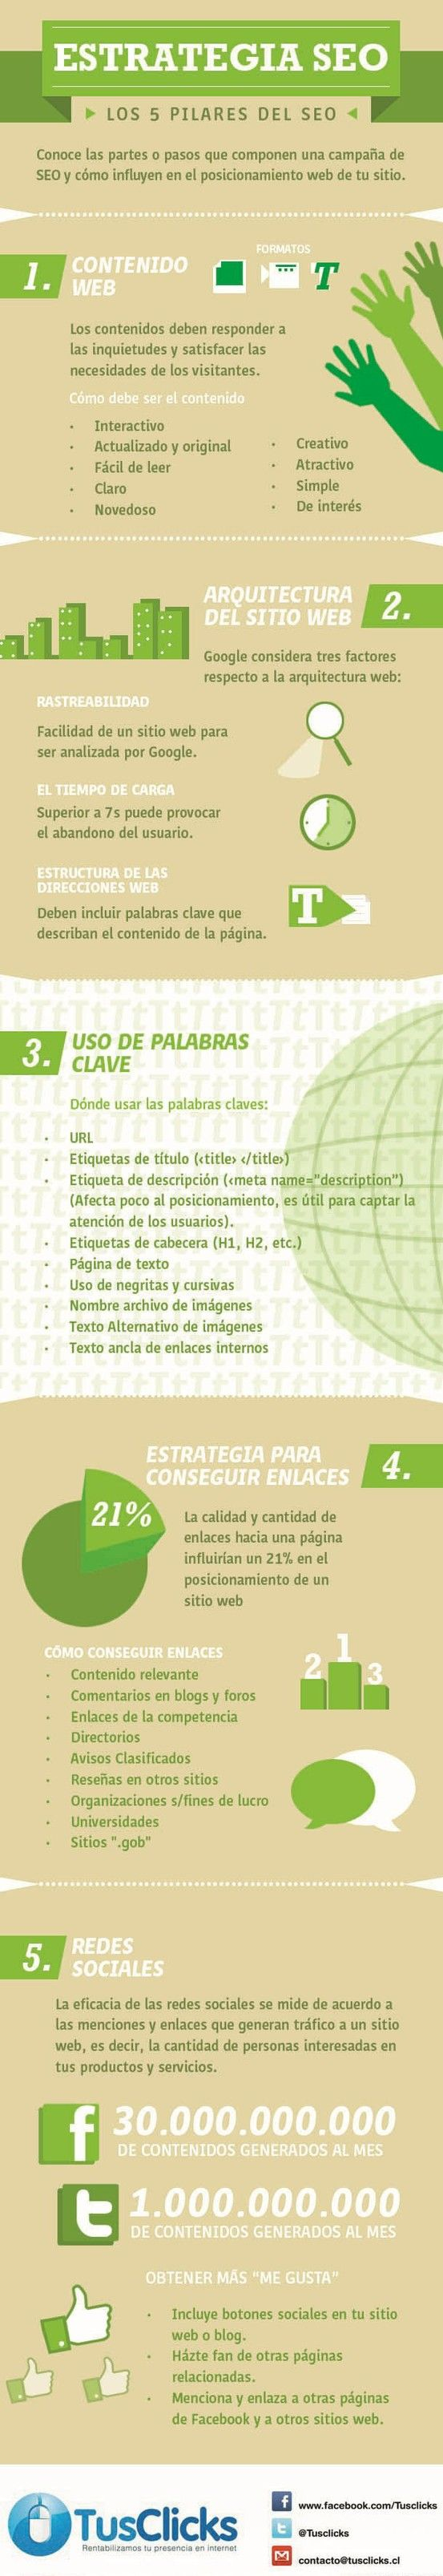 Los 5 pilares del SEO: Marketing Digital, Bestwaytoearnmoney Makemoney, Seo Infografia, Estrategia Seo, Social Media, Pilares Del, Seo, Social Networks, Socialmedia